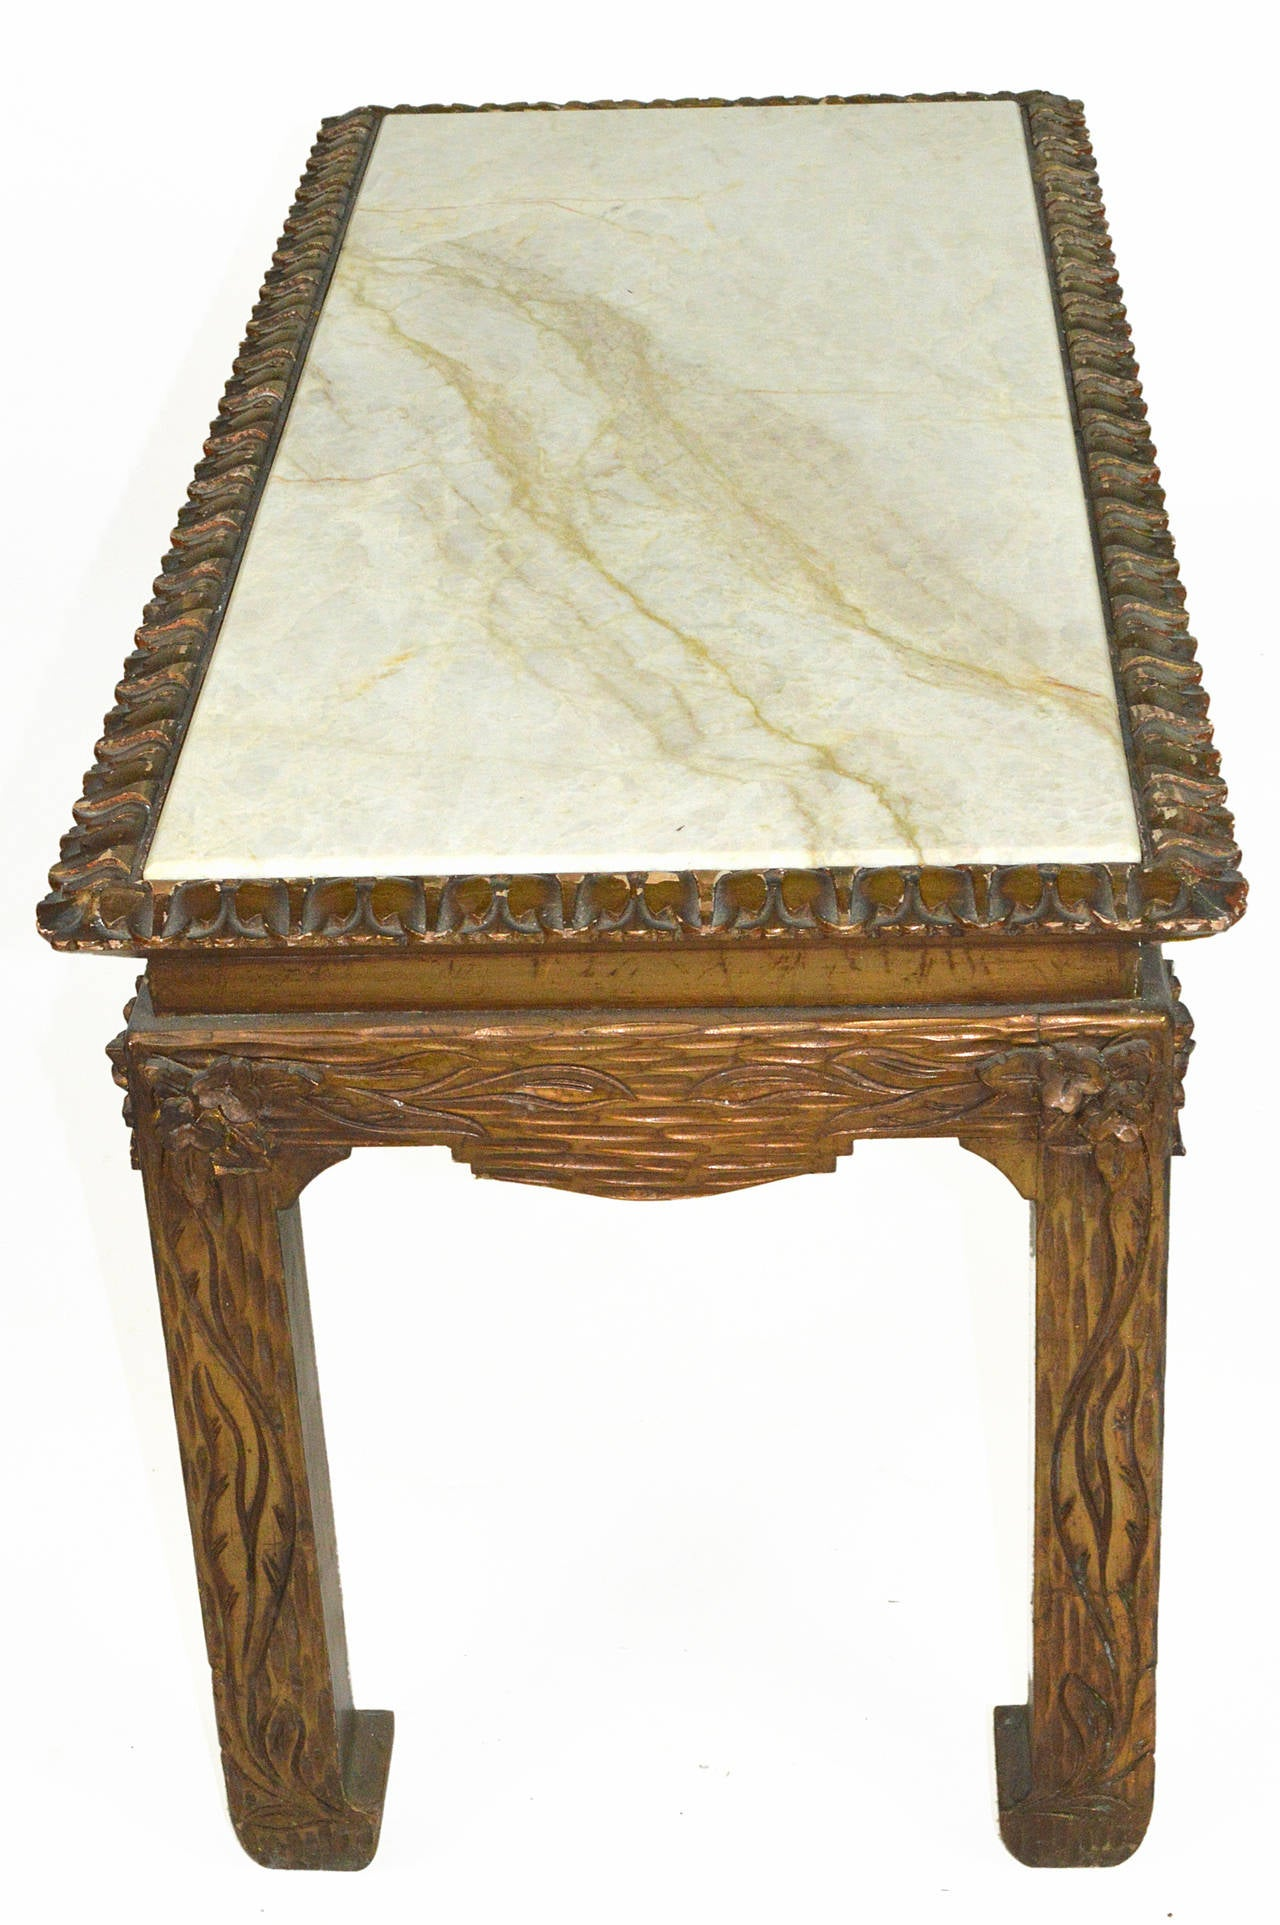 American Chinese Chippendale Carved Wood Accent Table with Inset Marble Top For Sale